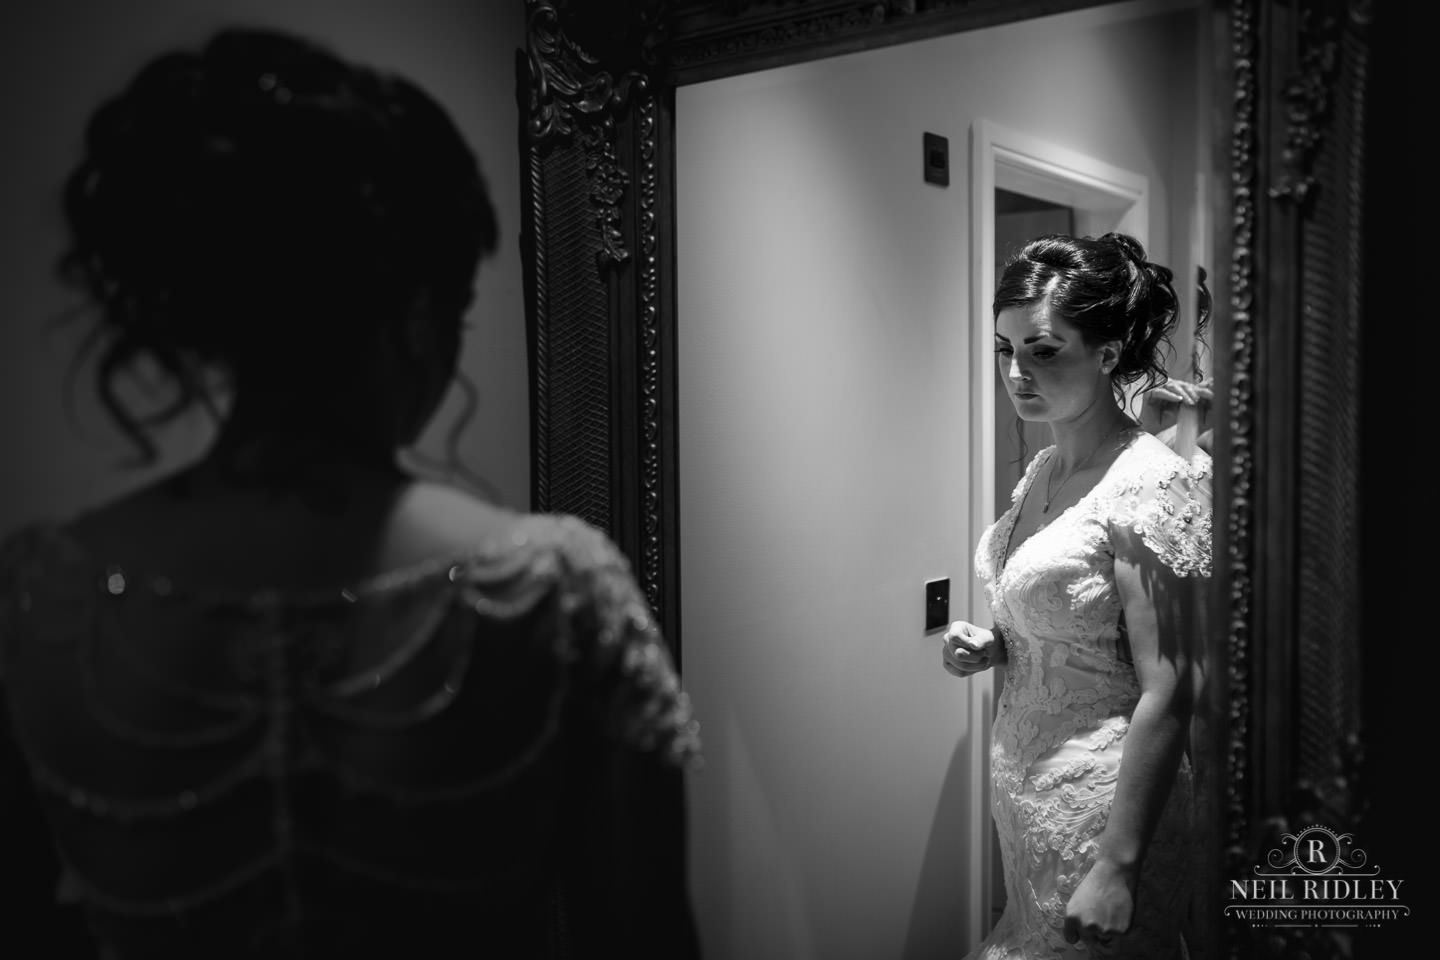 Black and white image of bride looking in the mirror with her reflection captured during Bridal Prep at The Mill at Conder Green